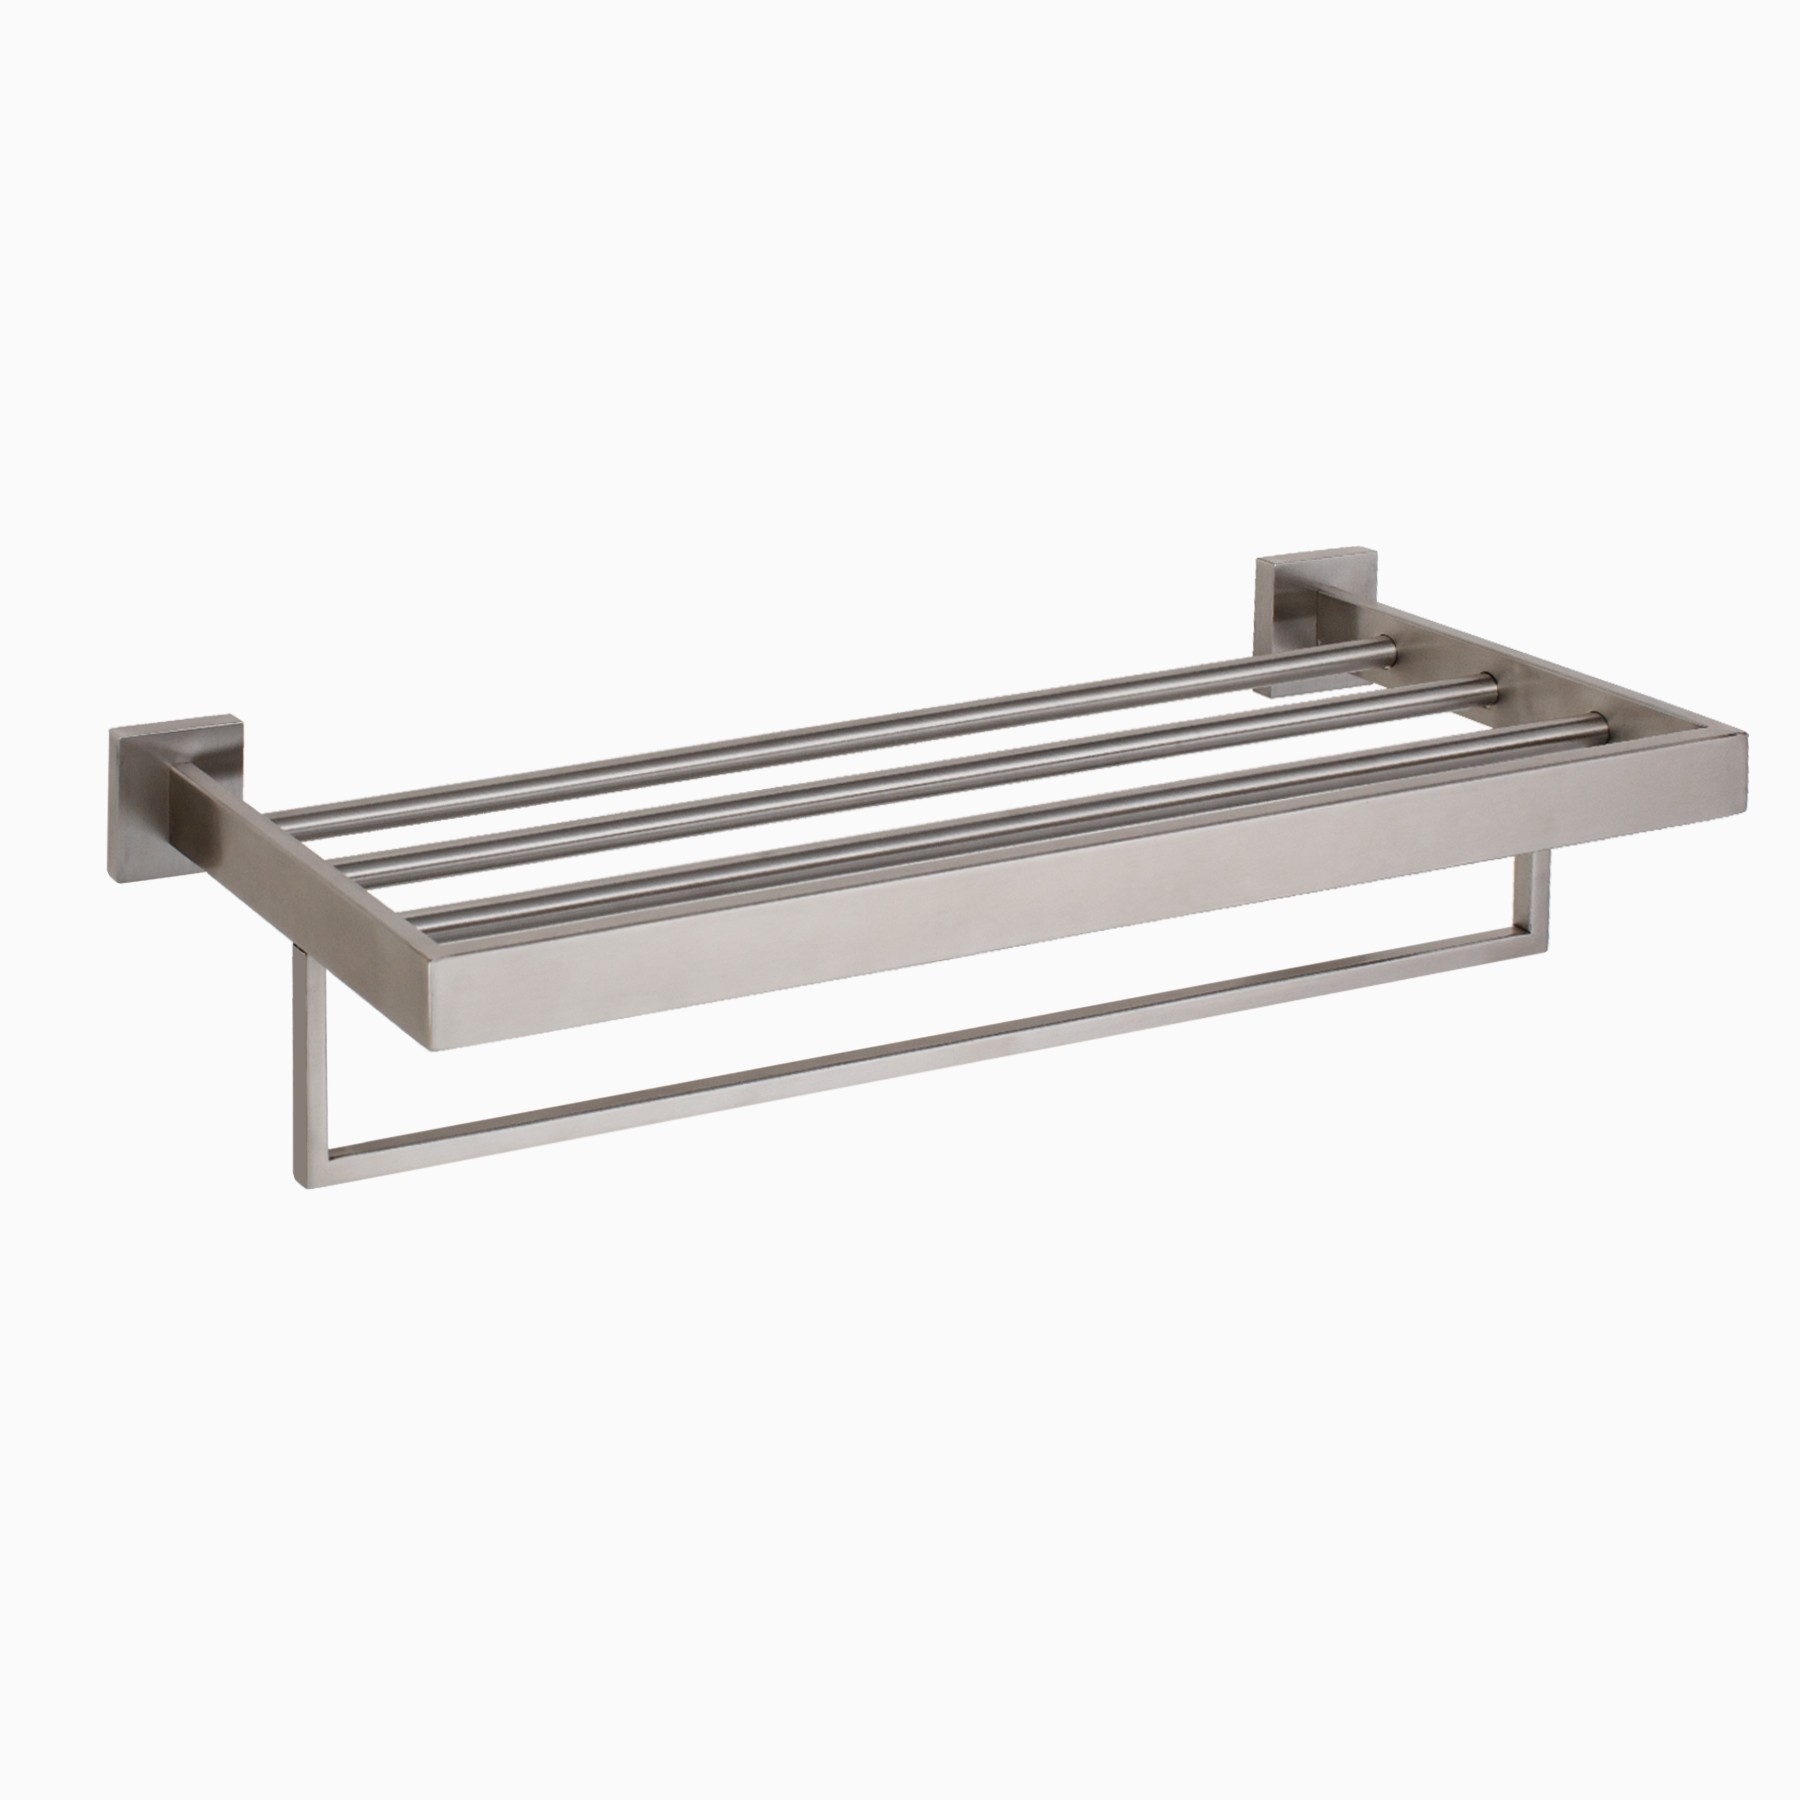 TriBeCa Stainless Steel Wall Mounted Towel Rack, Brushed Nickel ...